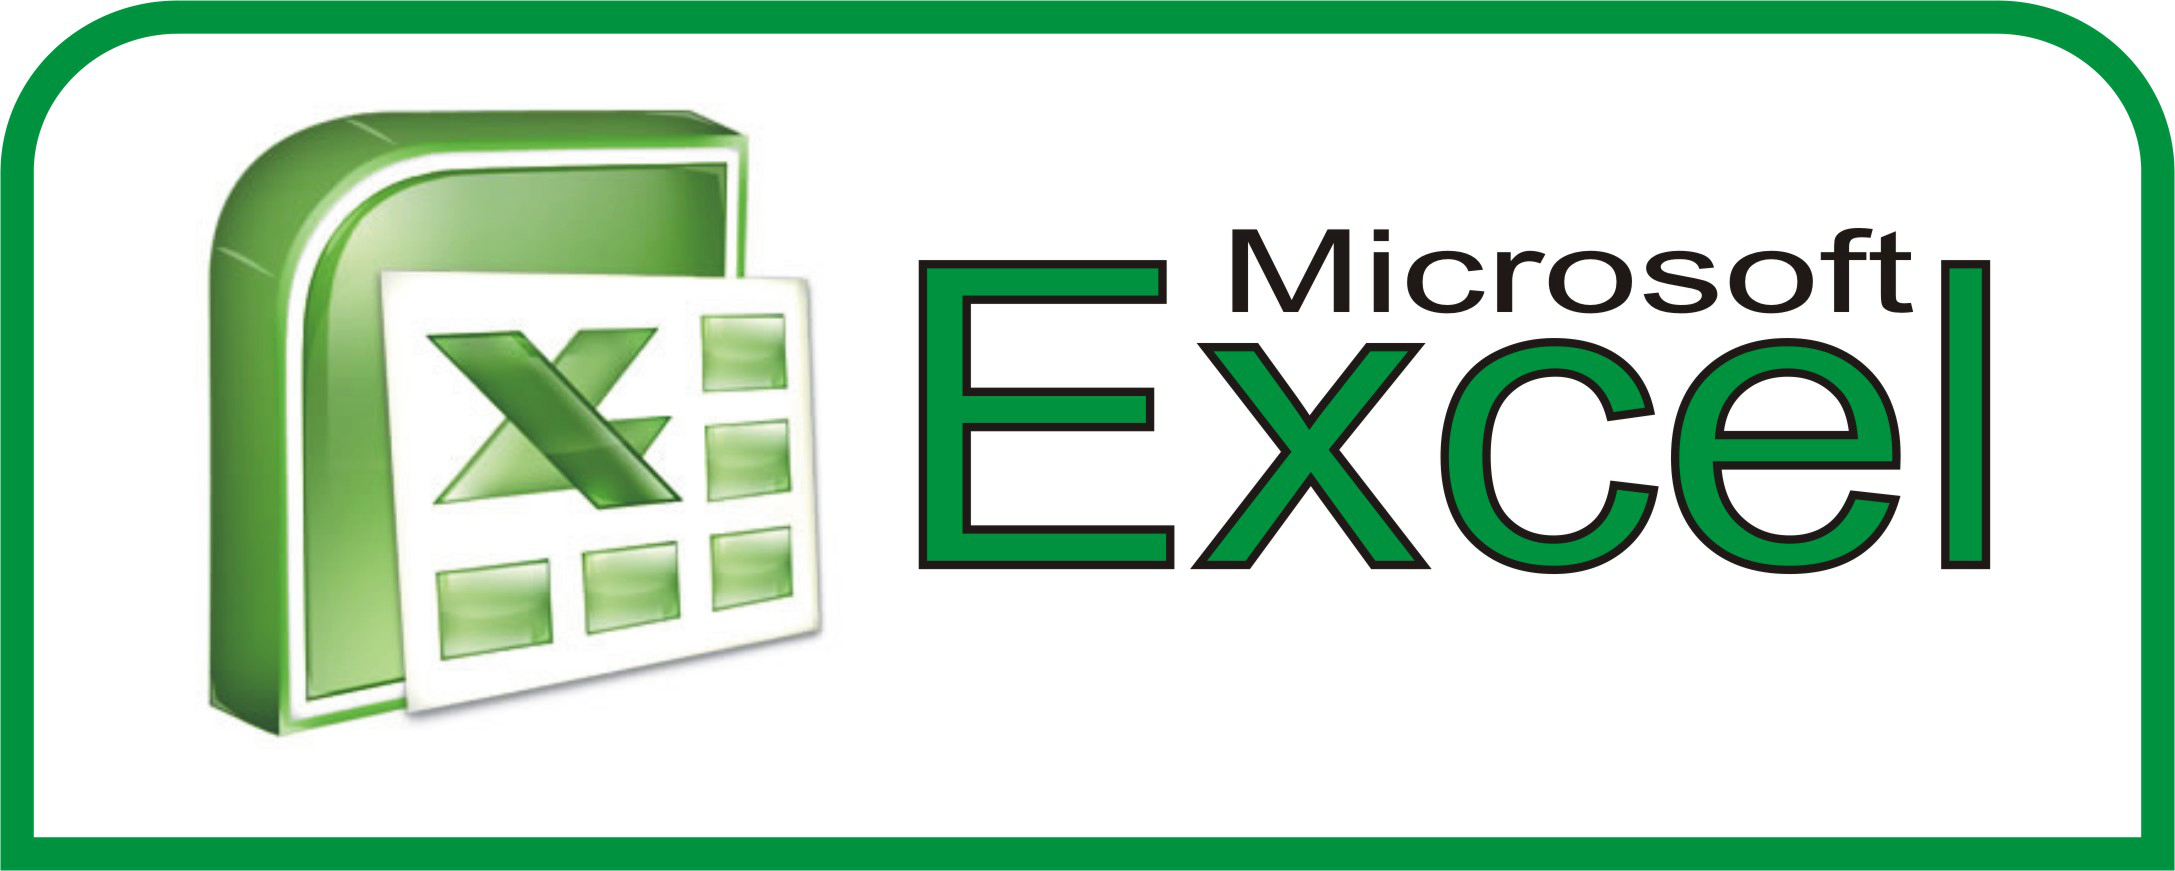 Ediblewildsus  Fascinating  Excel Shortcuts You Probably Didnt Know About  Techdissected With Handsome How To Remove Leading Zeros In Excel Besides How To Count Duplicates In Excel Furthermore Unhide In Excel With Archaic Excel Unhide All Rows Also List In Excel In Addition Spell Check On Excel And Accounting Number Format Excel  As Well As Excel Short Cuts Additionally Excel Countif Or From Techdissectedcom With Ediblewildsus  Handsome  Excel Shortcuts You Probably Didnt Know About  Techdissected With Archaic How To Remove Leading Zeros In Excel Besides How To Count Duplicates In Excel Furthermore Unhide In Excel And Fascinating Excel Unhide All Rows Also List In Excel In Addition Spell Check On Excel From Techdissectedcom